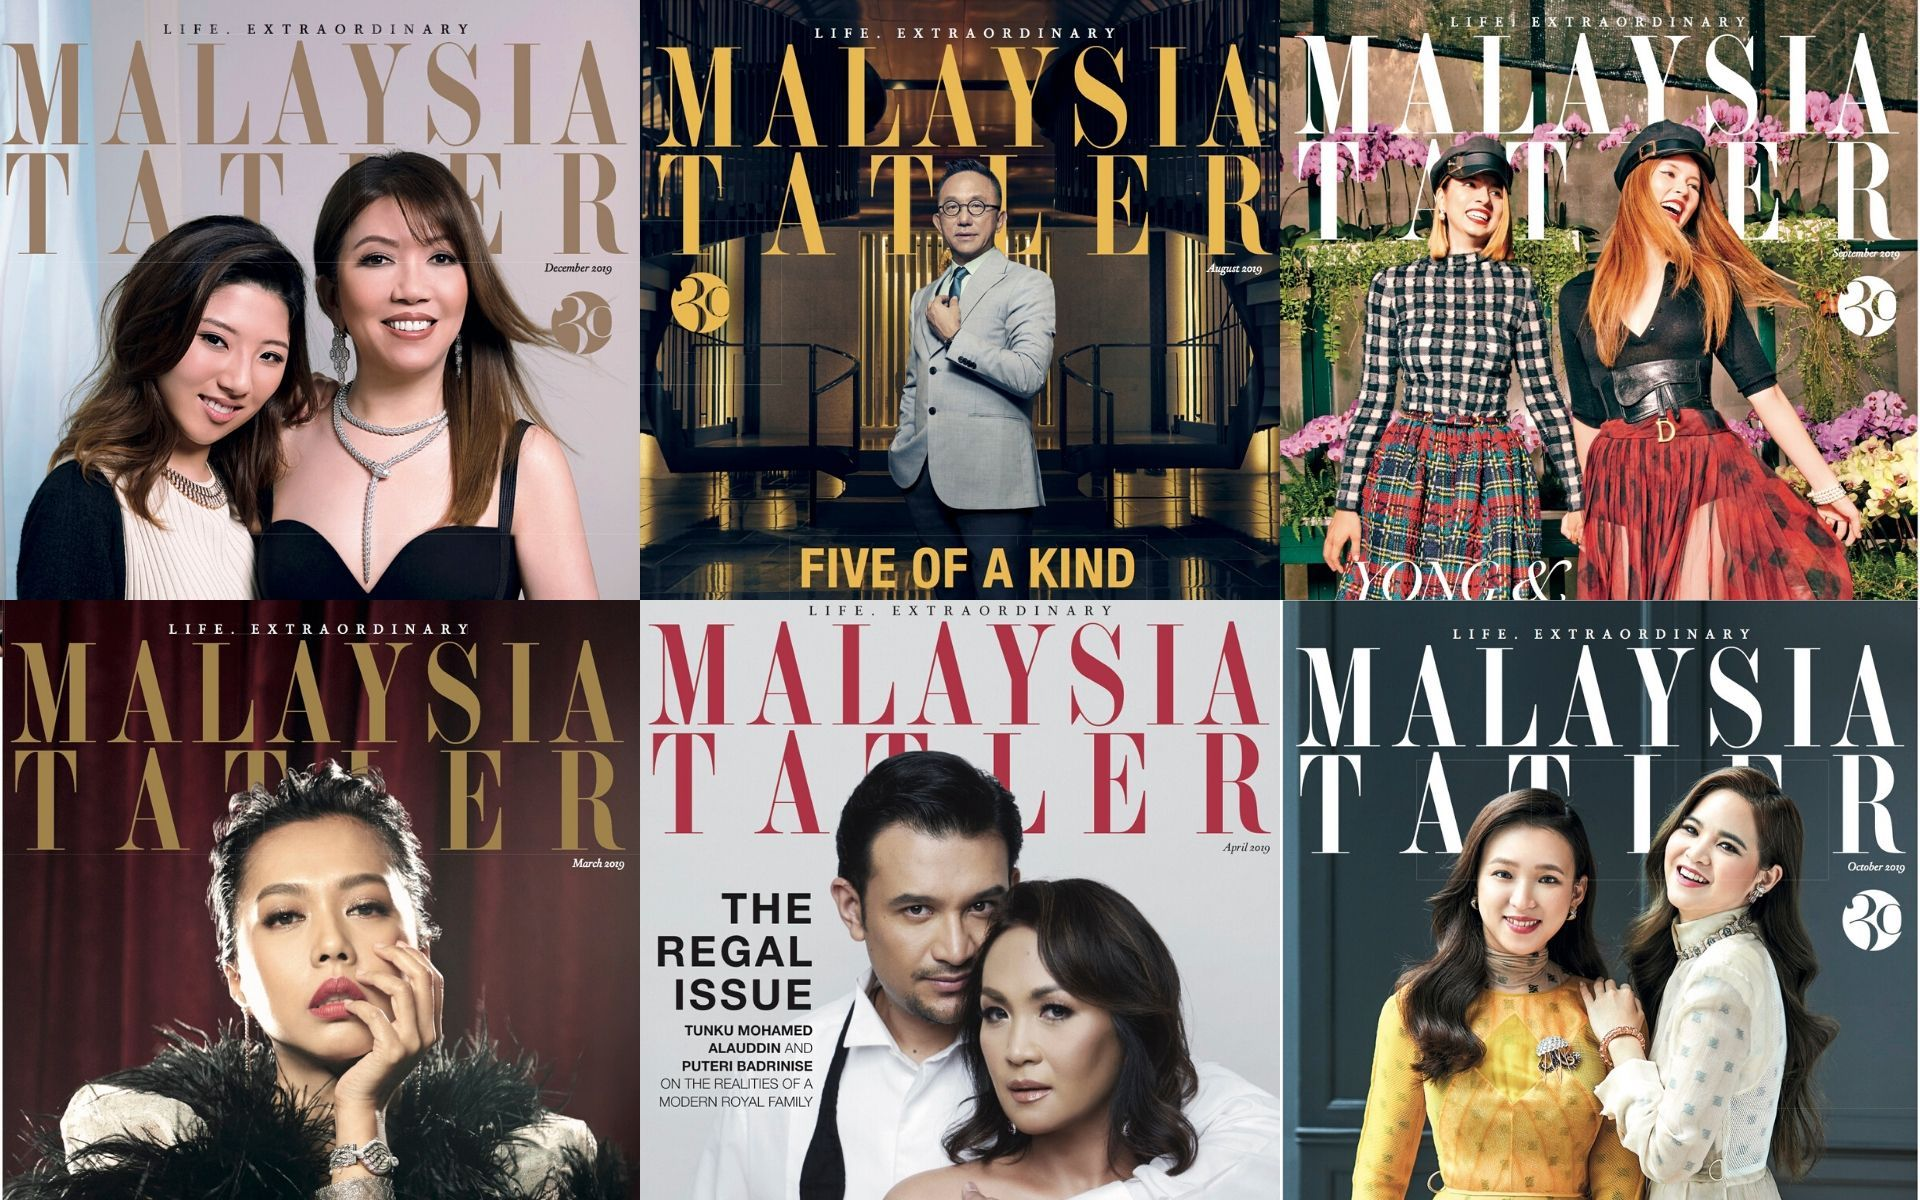 Our 2019 Cover Personalities Look Back On The Last Decade - And What They Look Forward To In 2020